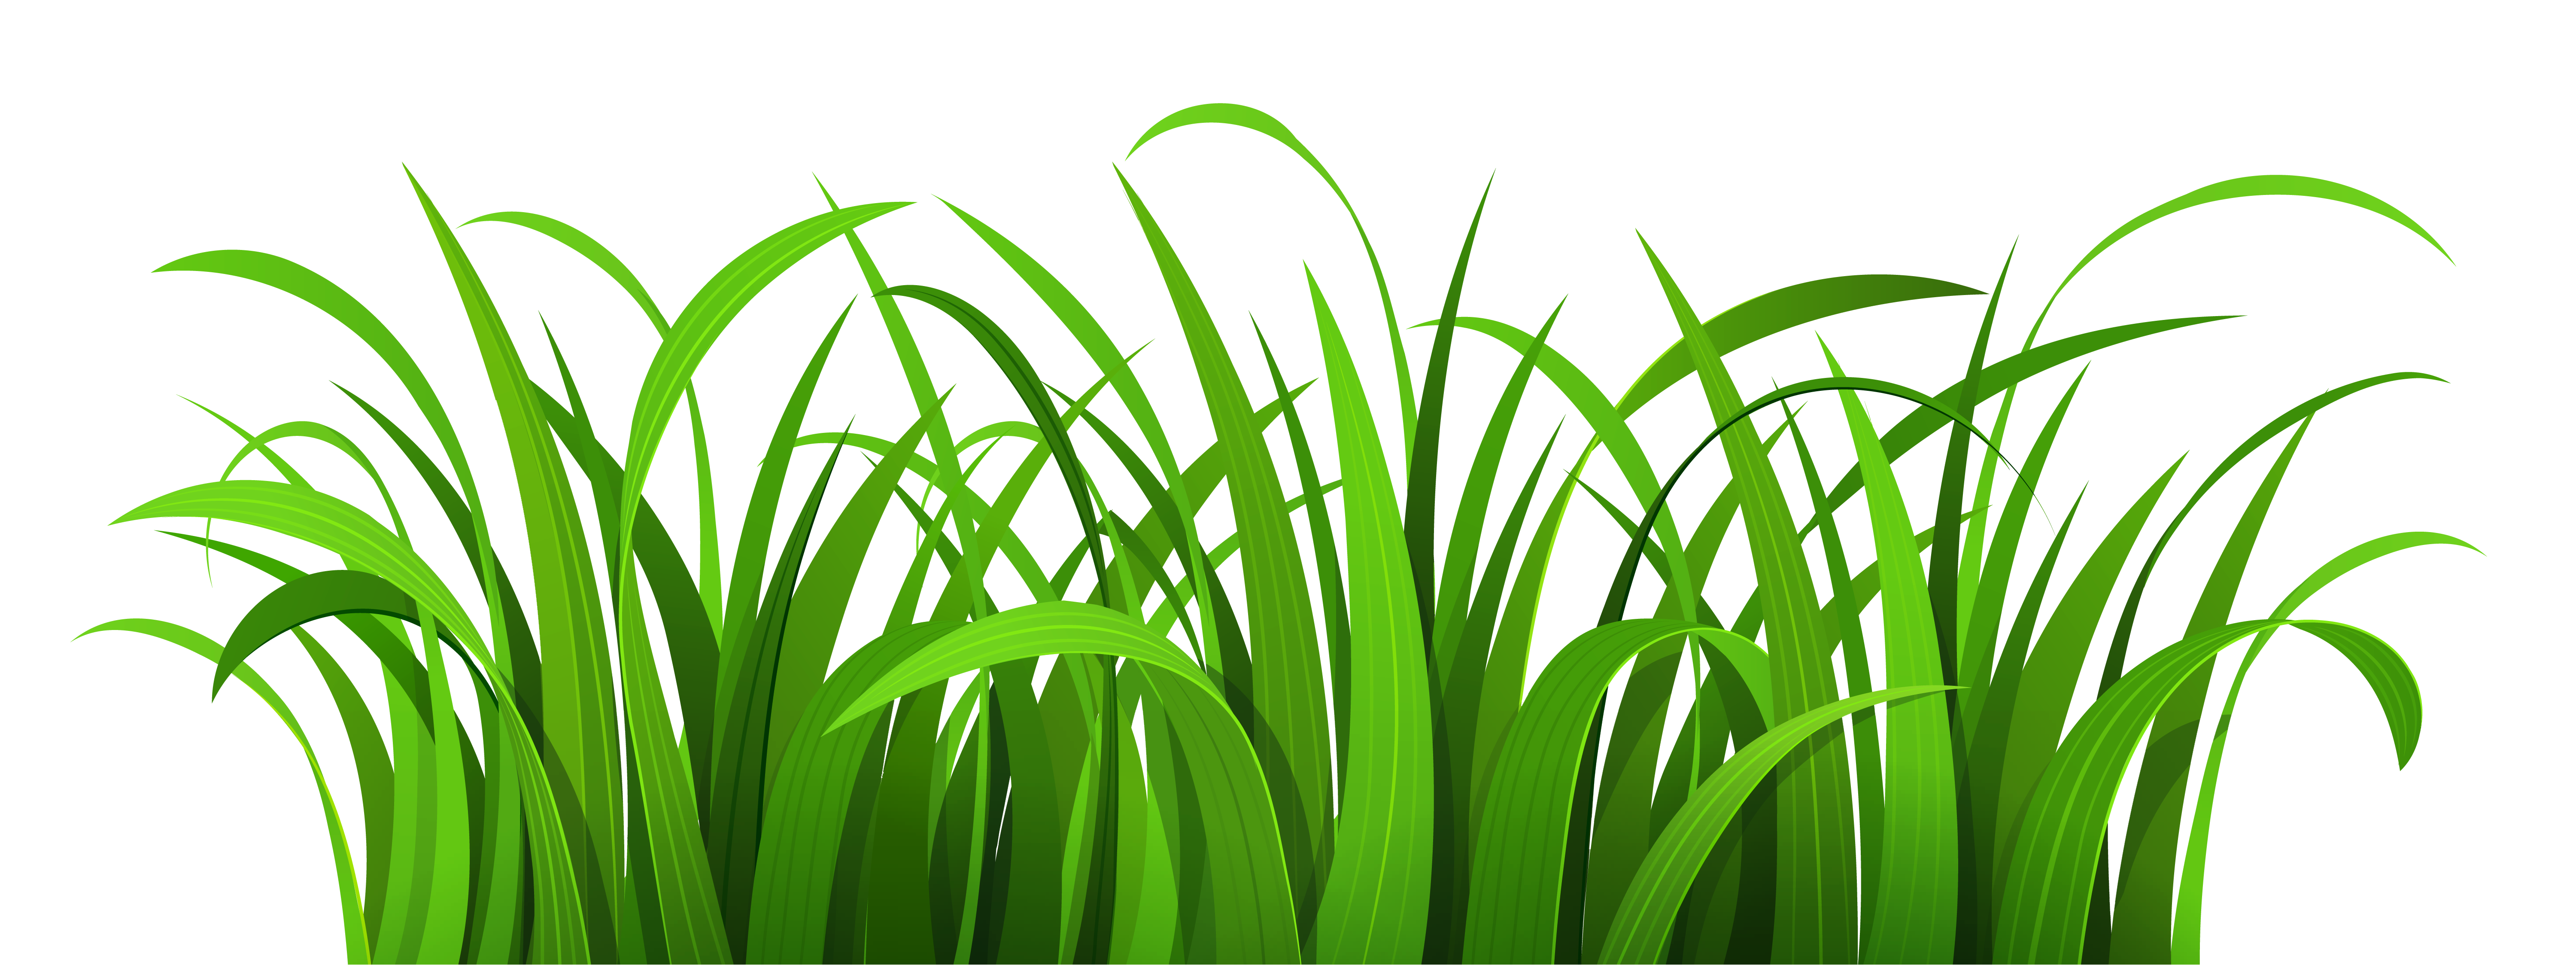 Png bulletin board ideas. Lawn clipart grass patch graphic transparent